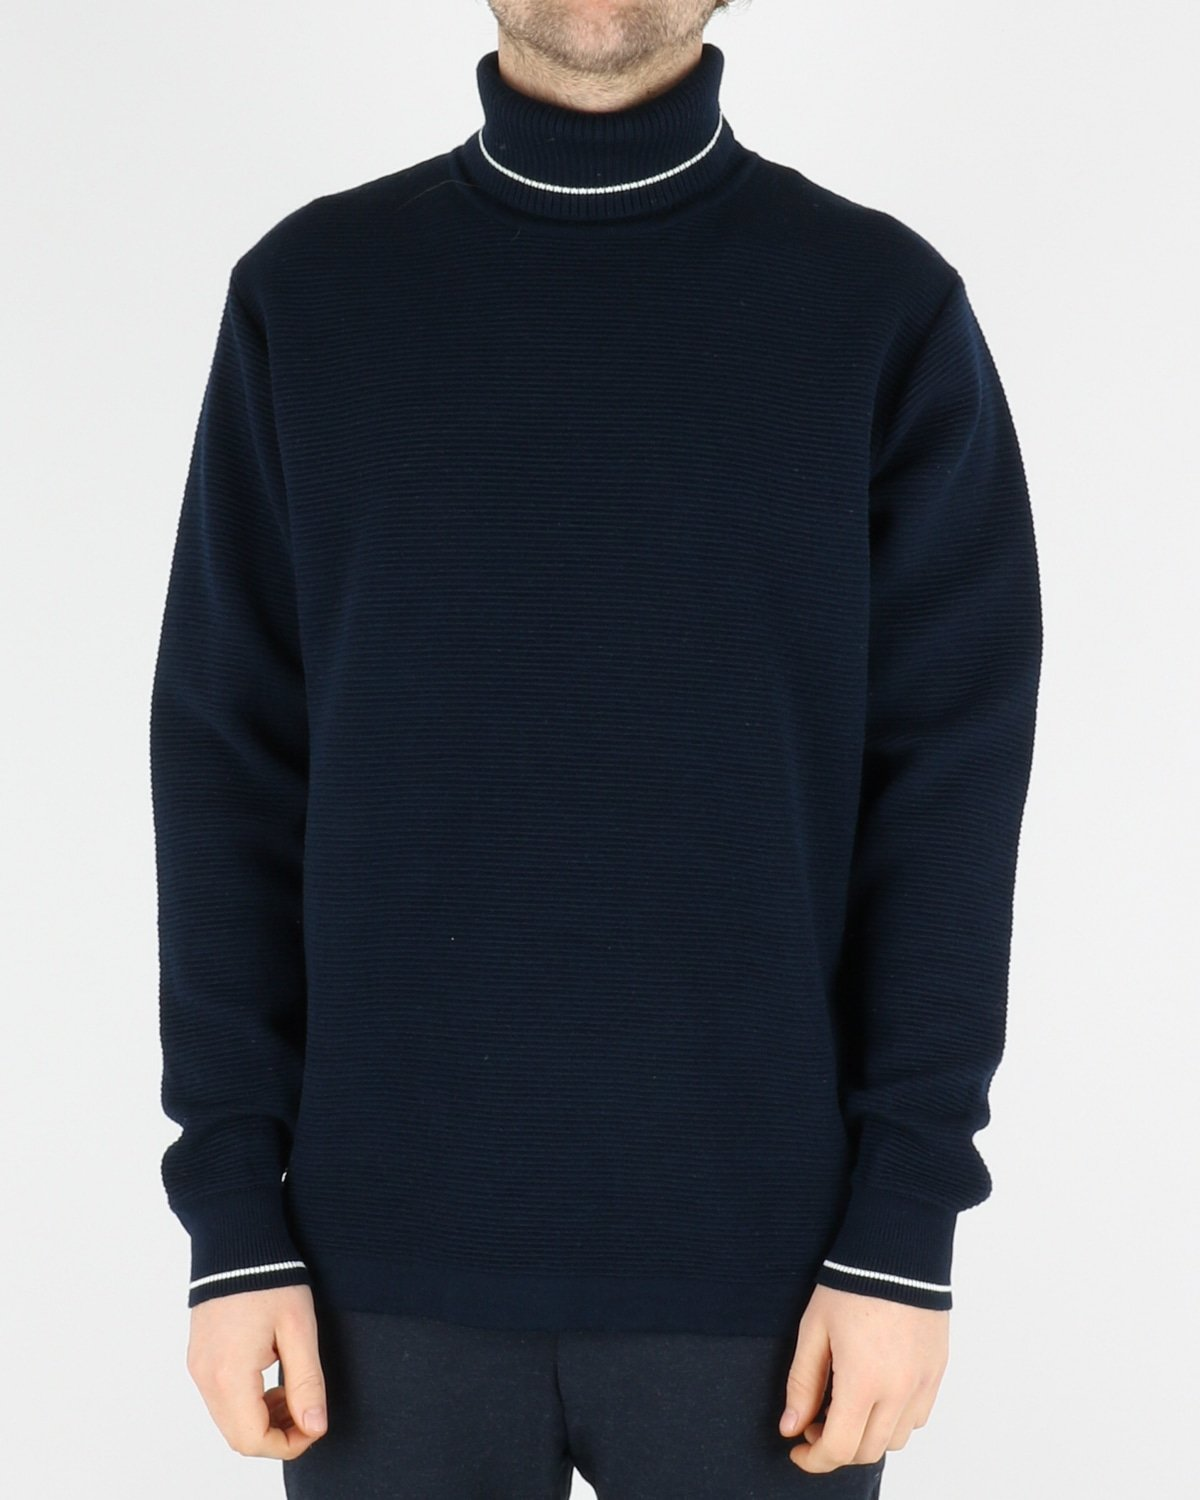 woodbird_craving otto turtle knit_navy_1_4